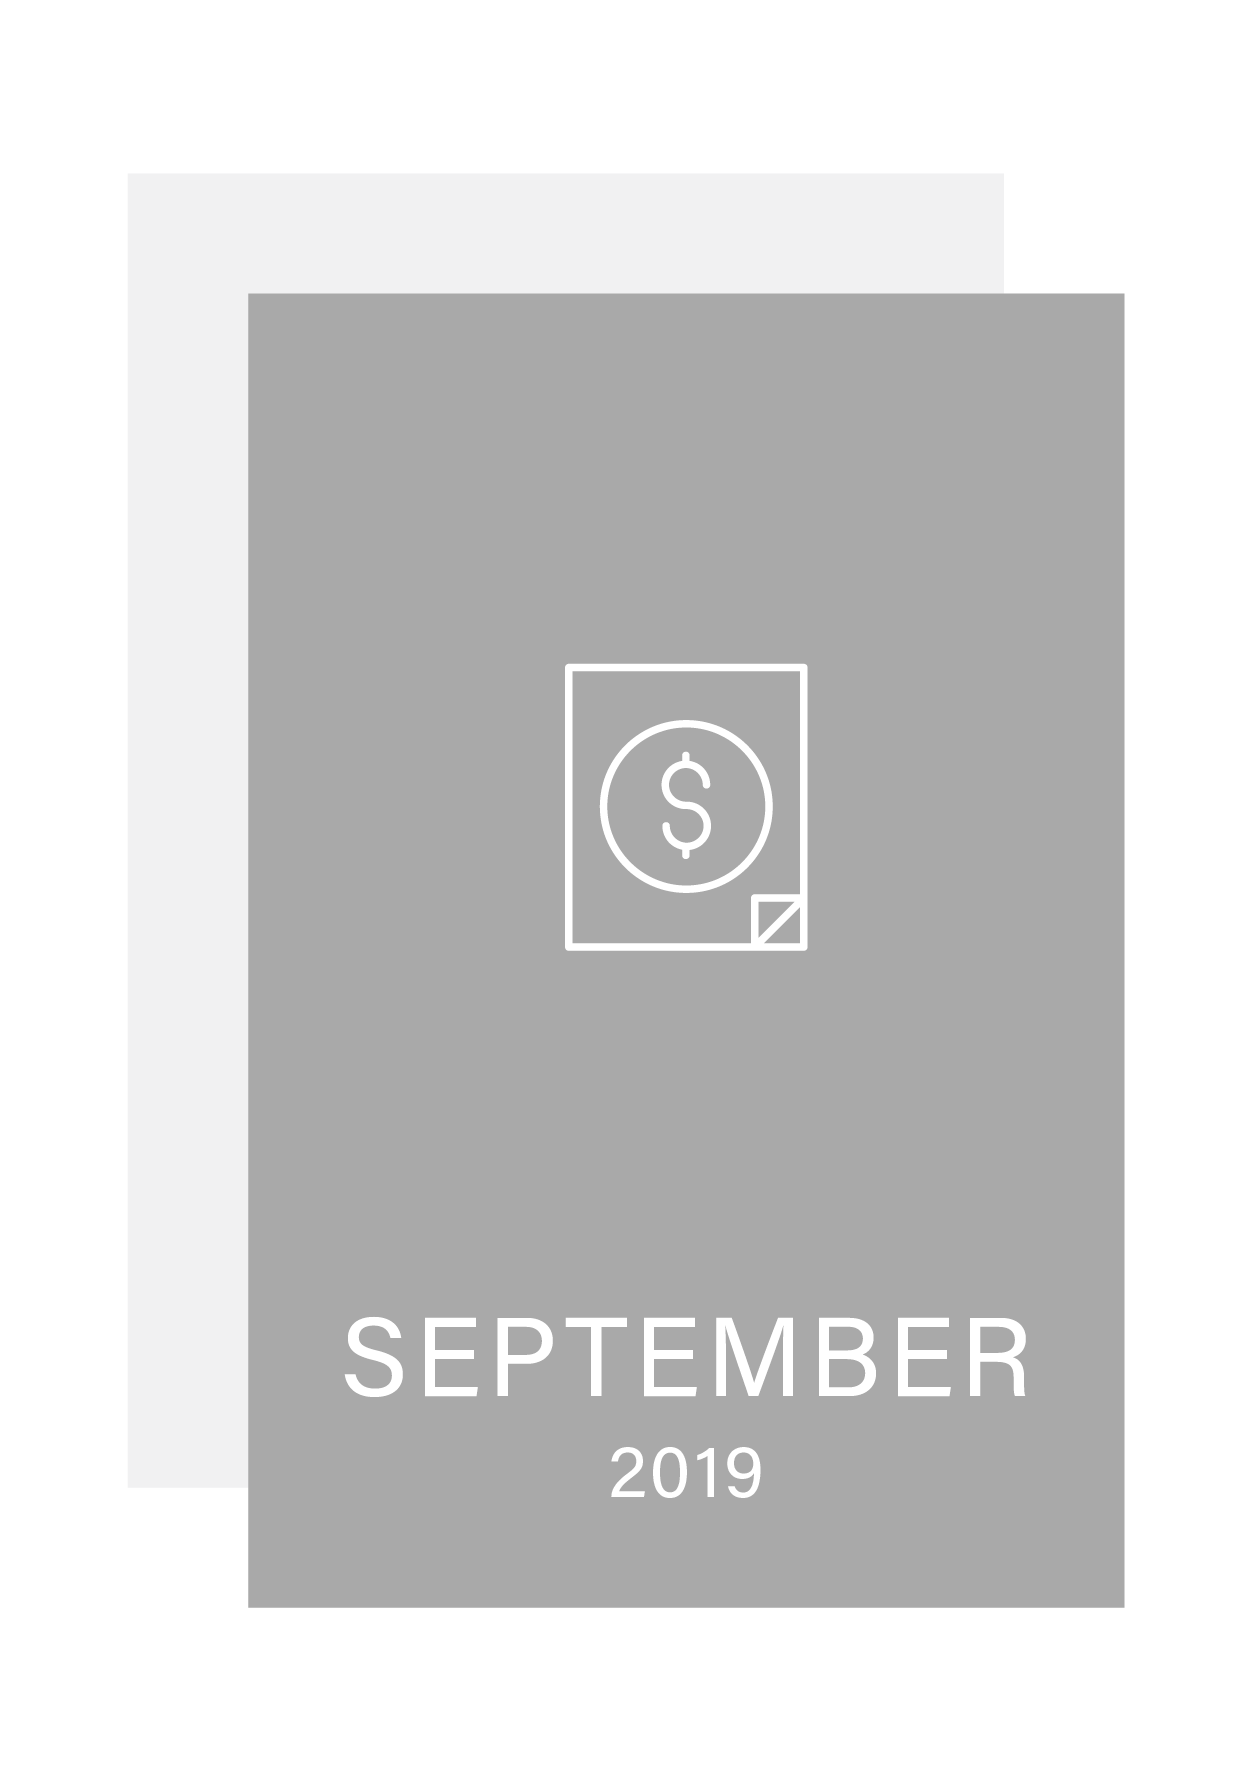 Finestone_Partners_Fiduciary_Insights_Newsletter_Image_September_2019.png